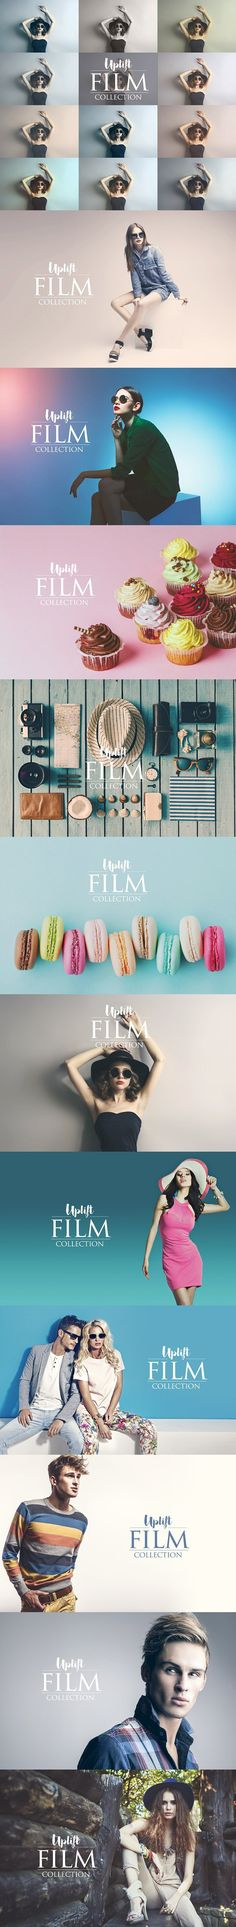 Uplift FILM Collection for Photoshop. Actions. $19.00